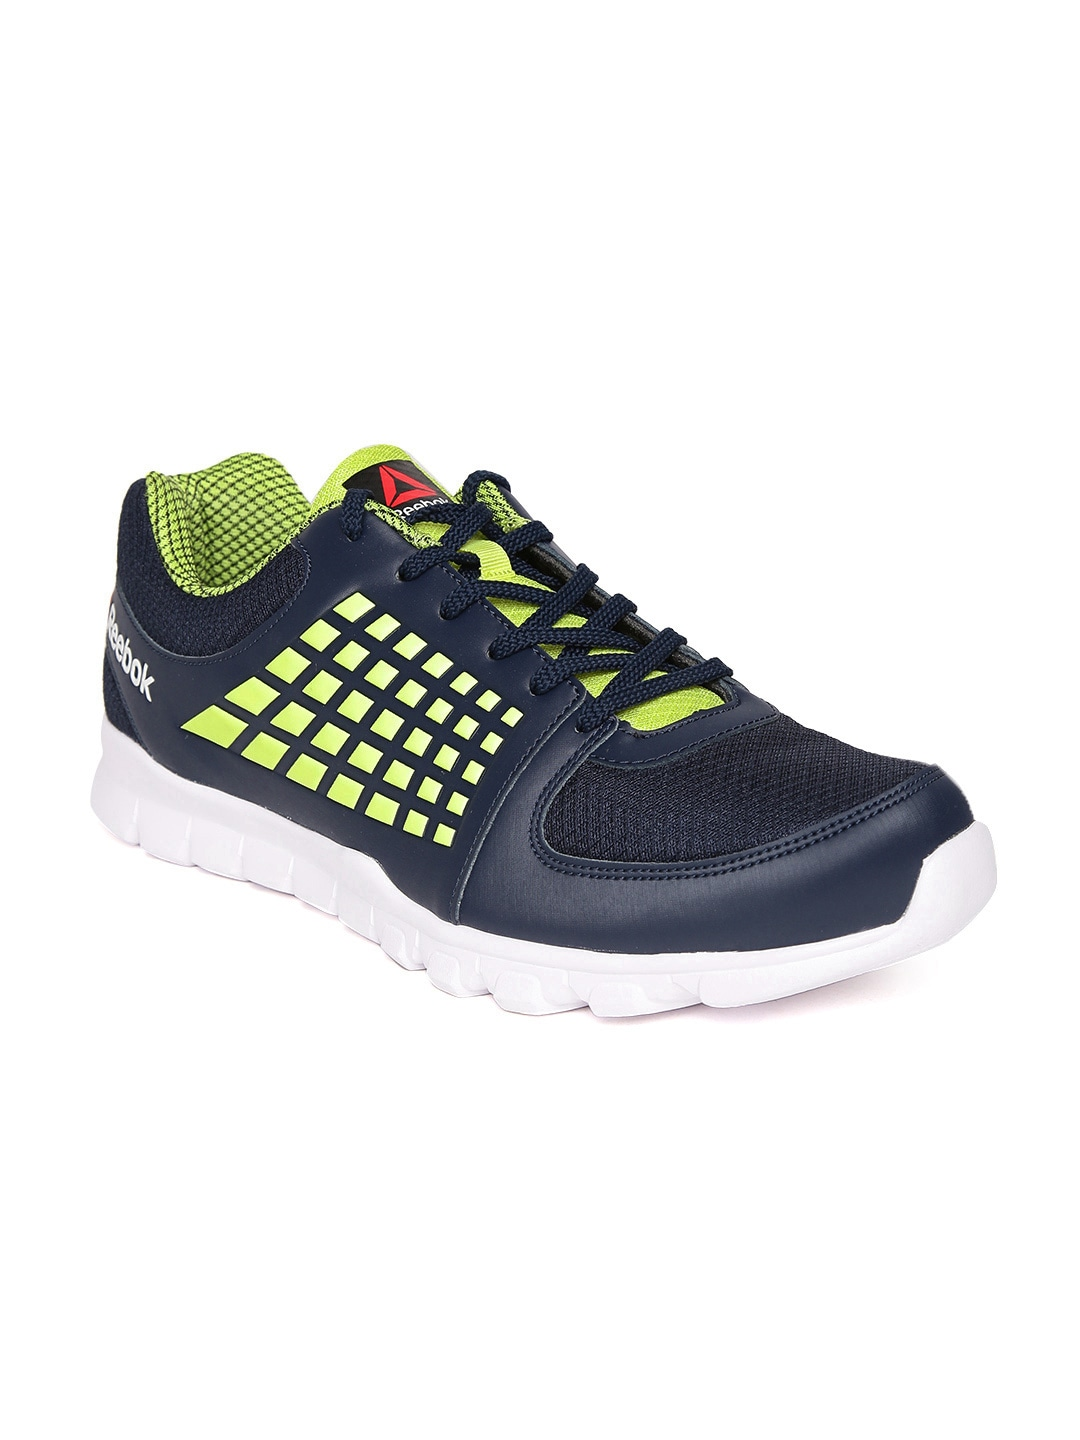 8abc7d1608246 Reebok Sports Footwear - Buy Reebok Sports Footwear Online in India